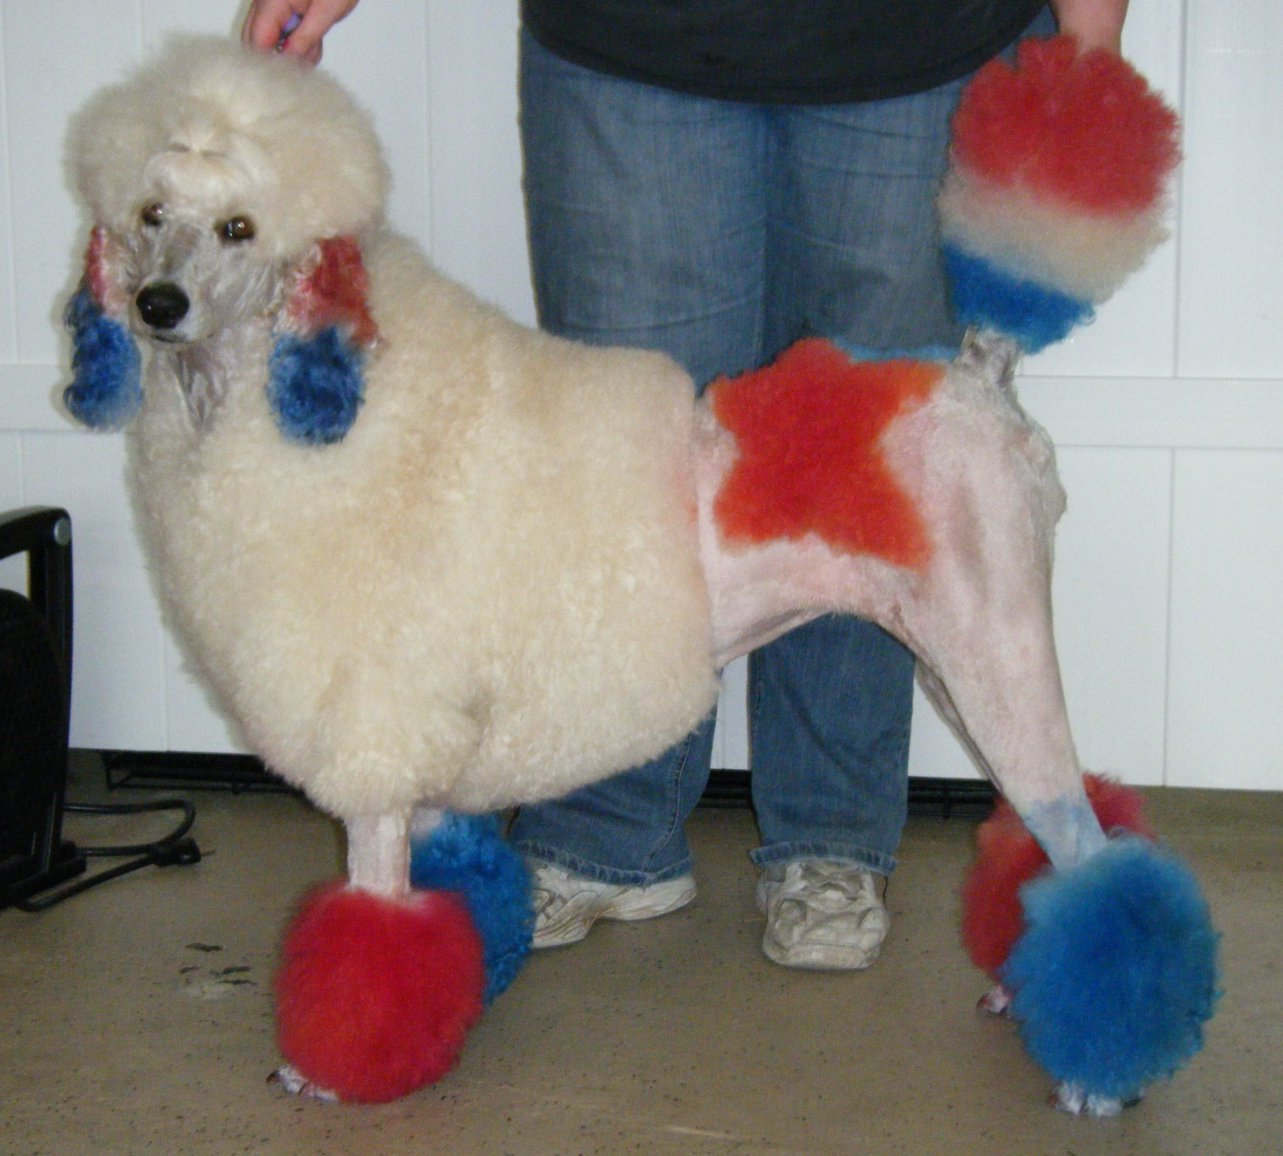 Blue Dyed Standard Poodle in mind with dye AND food